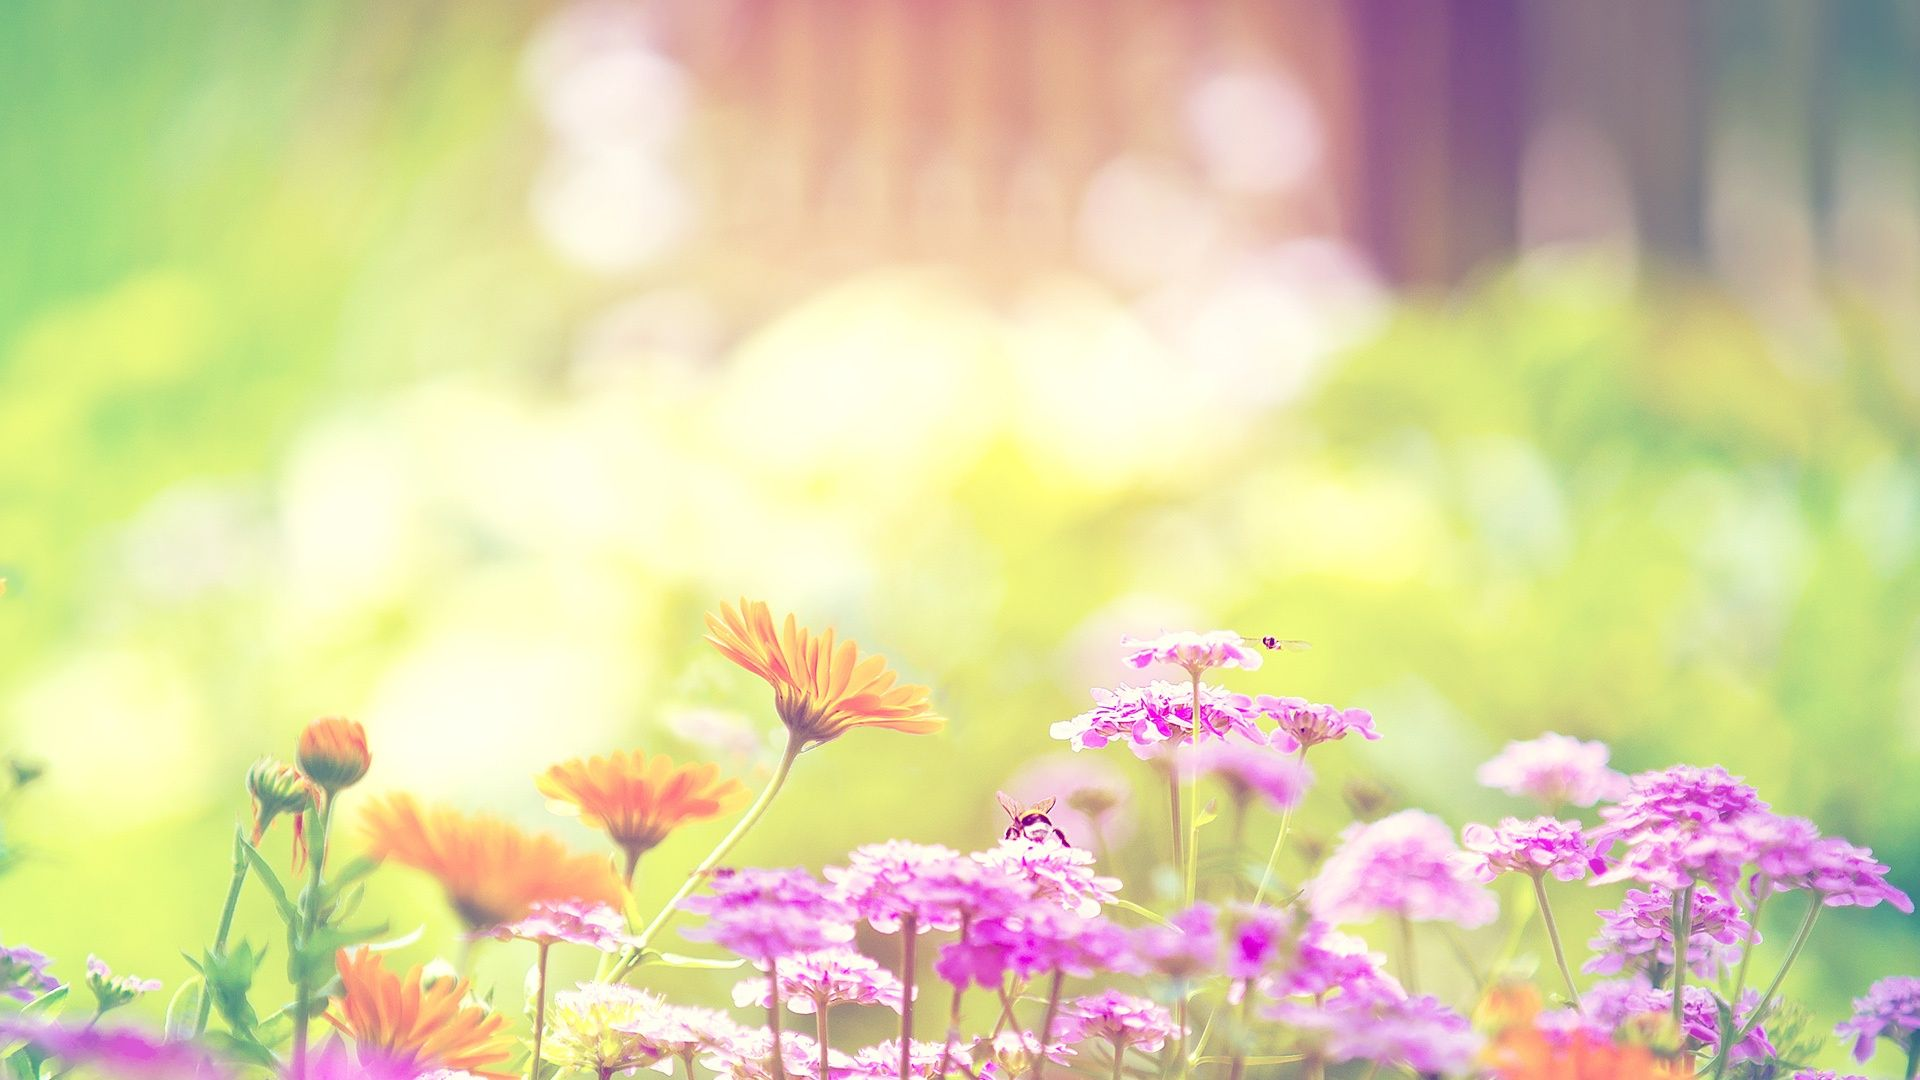 Pretty Flowers Backgrounds Tumblr LOL Pinterest